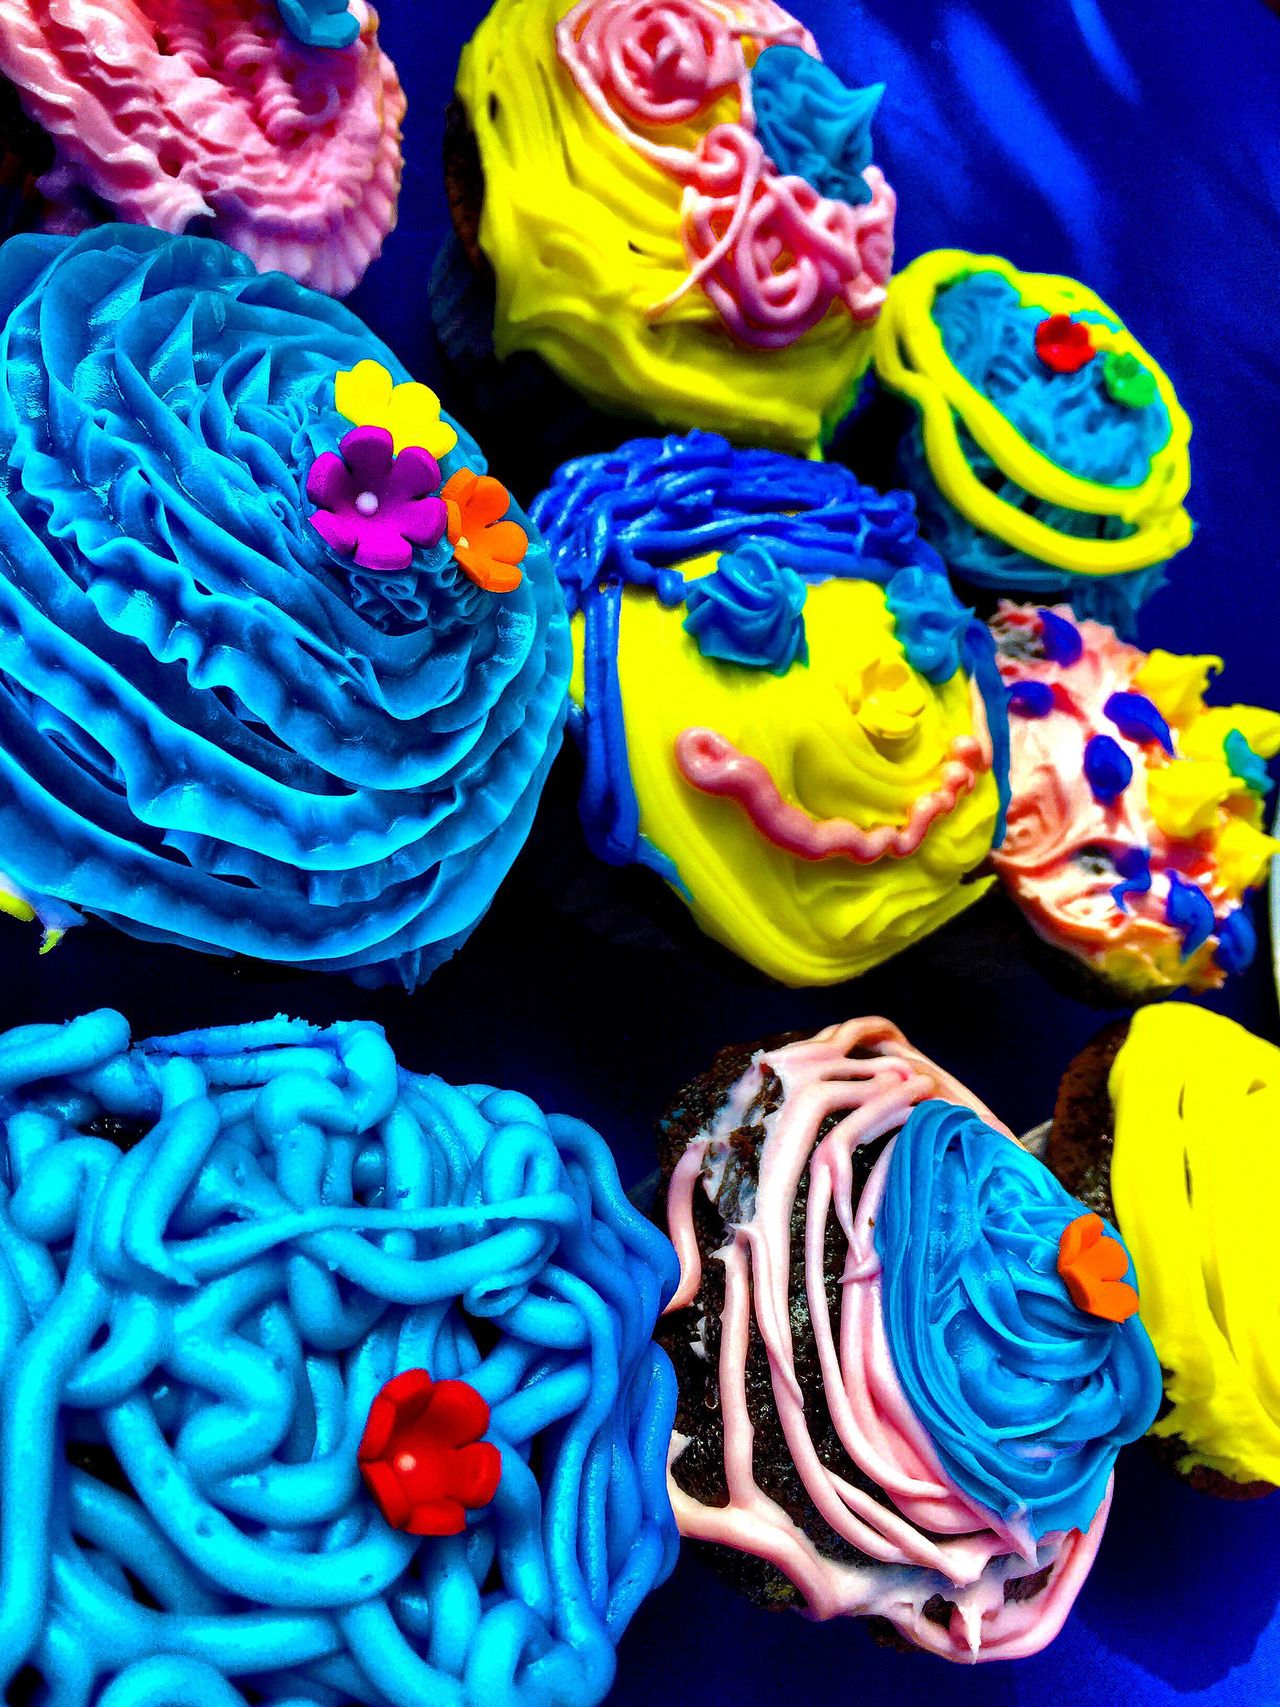 Visual Feast Multi Colored Sweet Food Choice Retail  For Sale Blue No People Variation Food Indoors  Close-up Freshness Day Cupcakes Primary Colors Frosting The Week On EyeEm EyeEm New Here